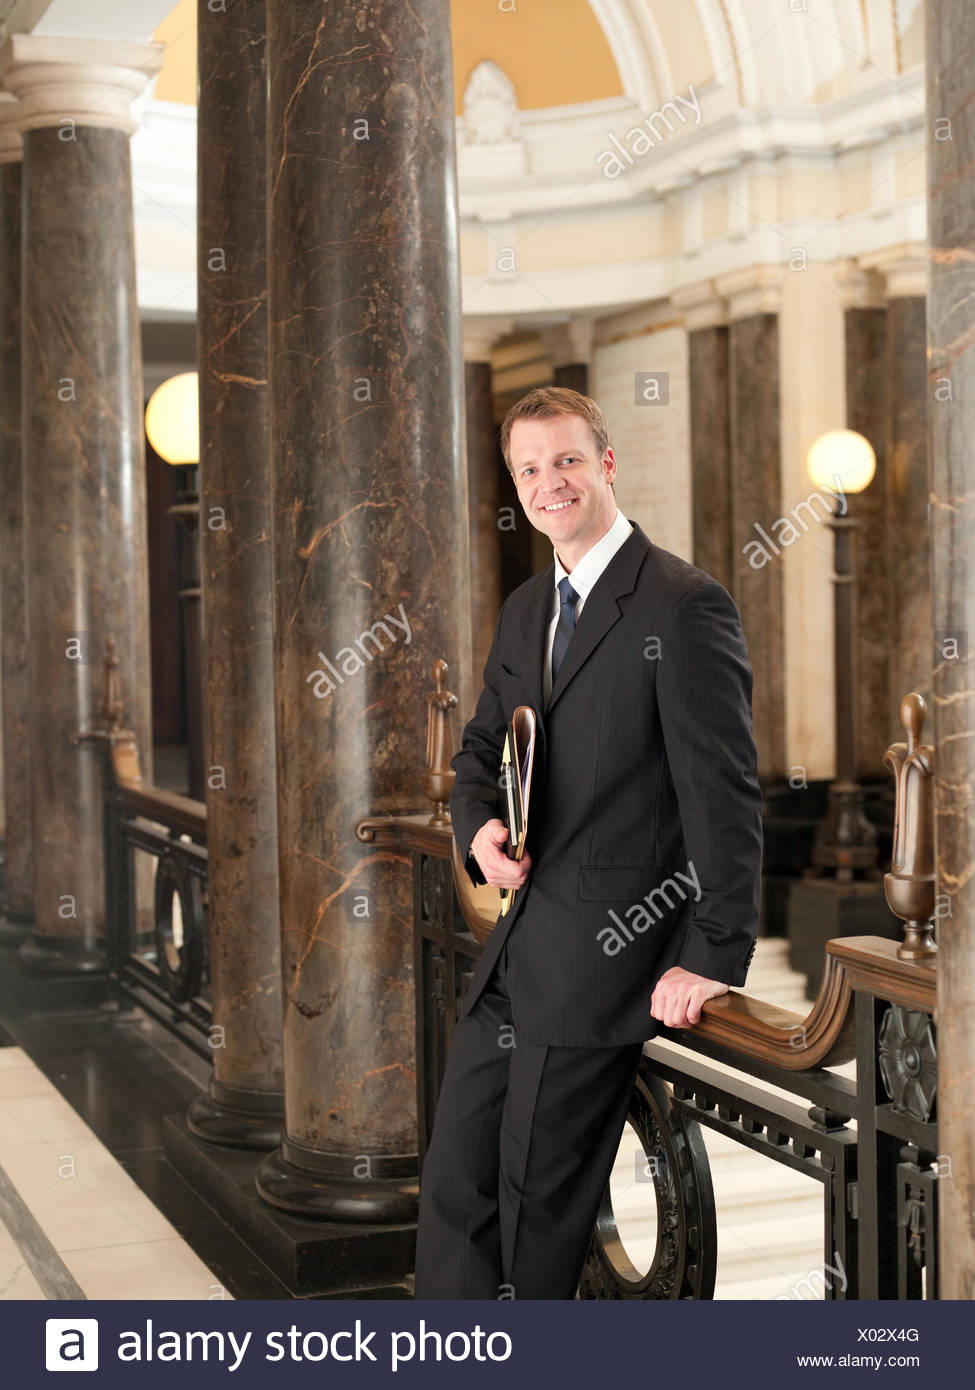 Confident lawyer leaning against railing in corridor - Stock Image